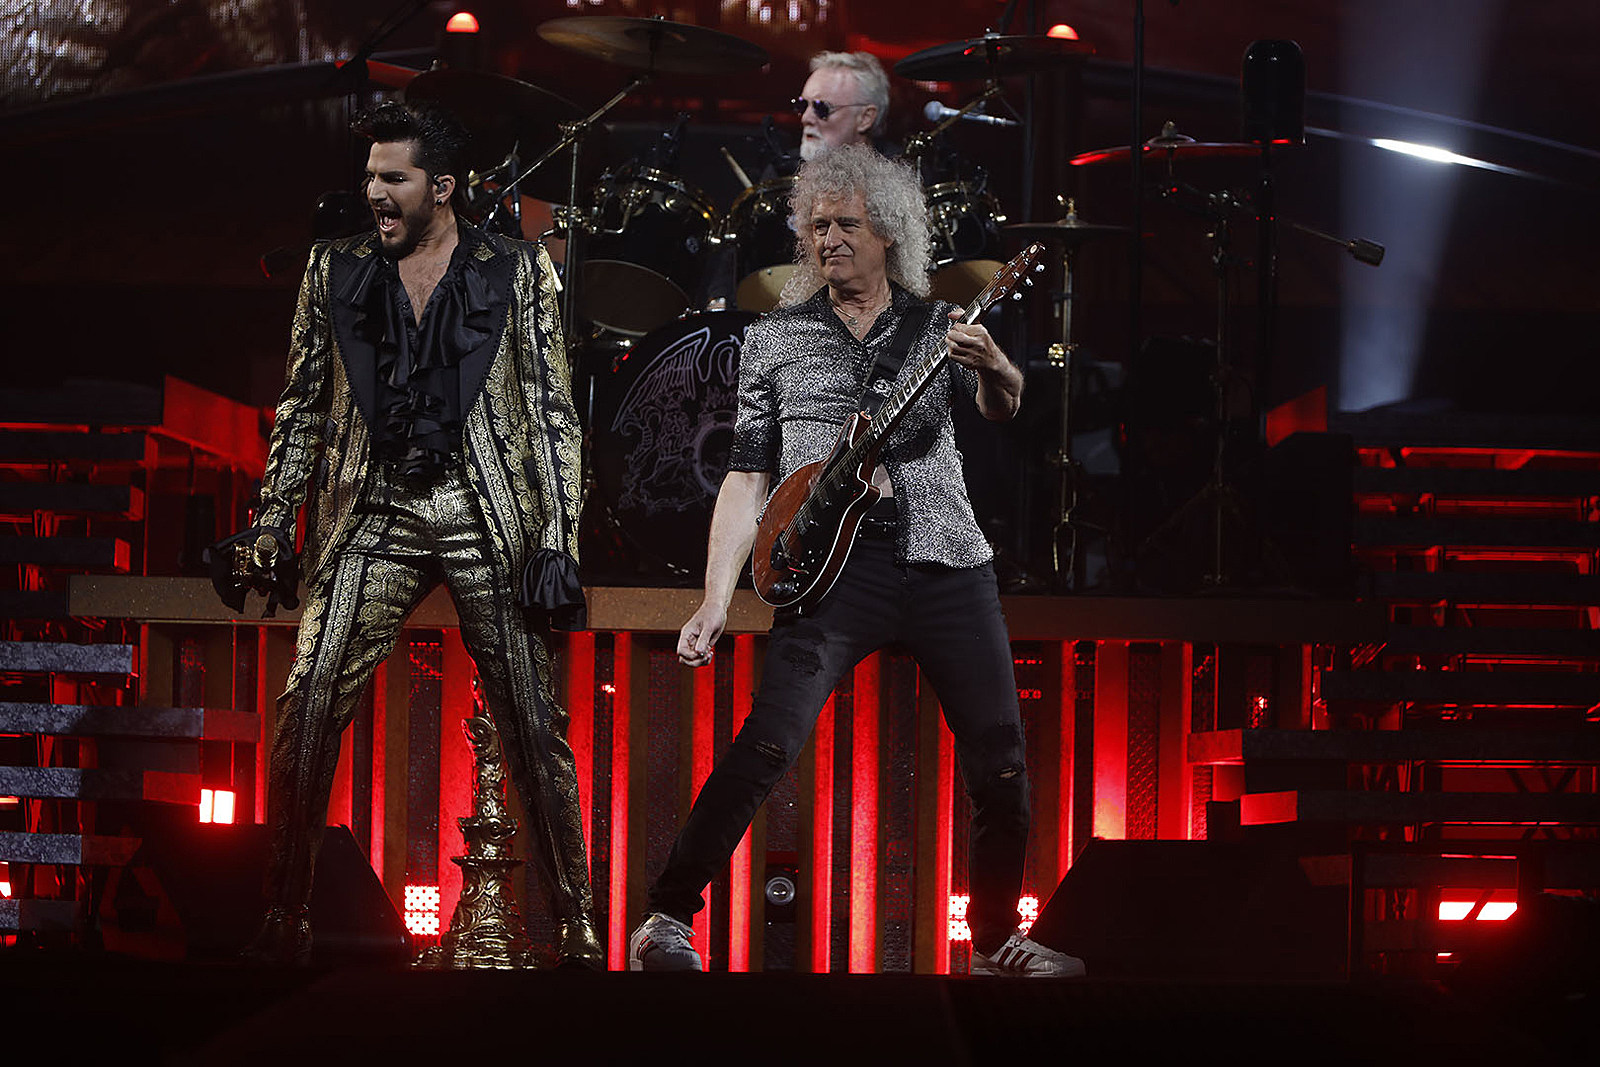 https://townsquare.media/site/295/files/2019/07/4Queen.jpg